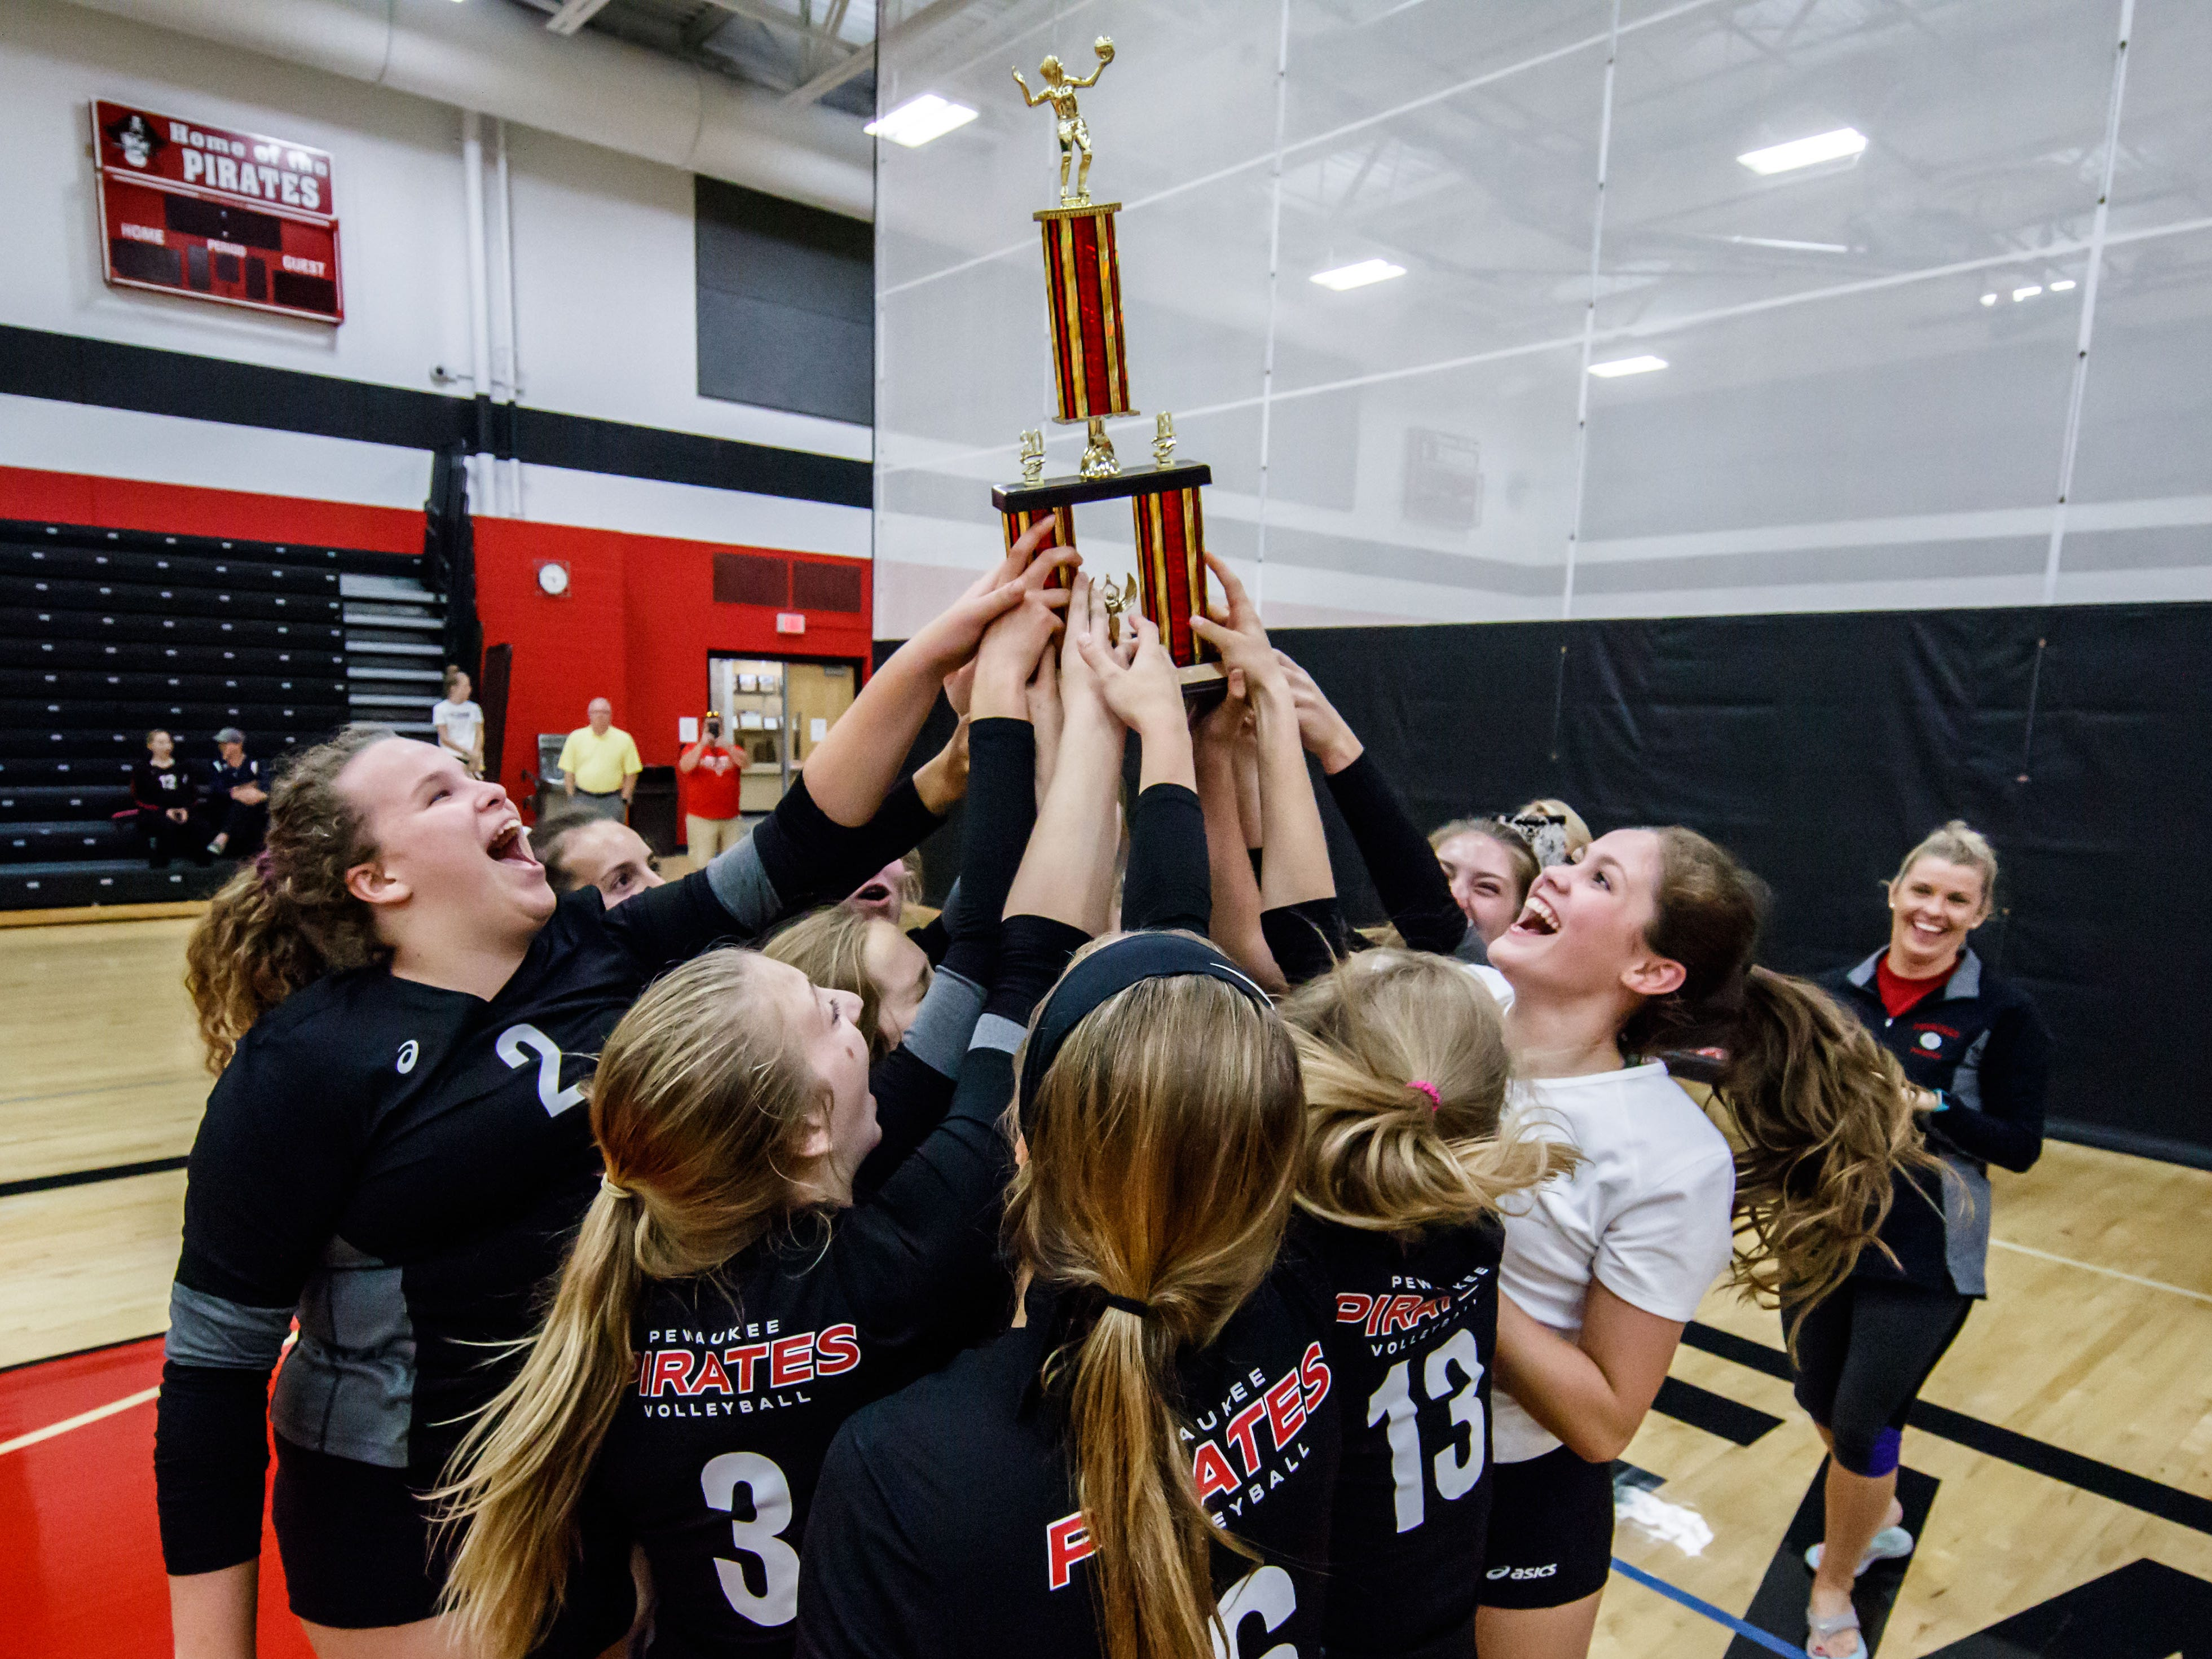 Pewaukee celebrates winning the championship match in their Lady Pirate Invitational against Notre Dame Academy on Saturday, Sept. 15, 2018. This is the first time the Pirates have won the tournament in the 18-years they have been hosting it.